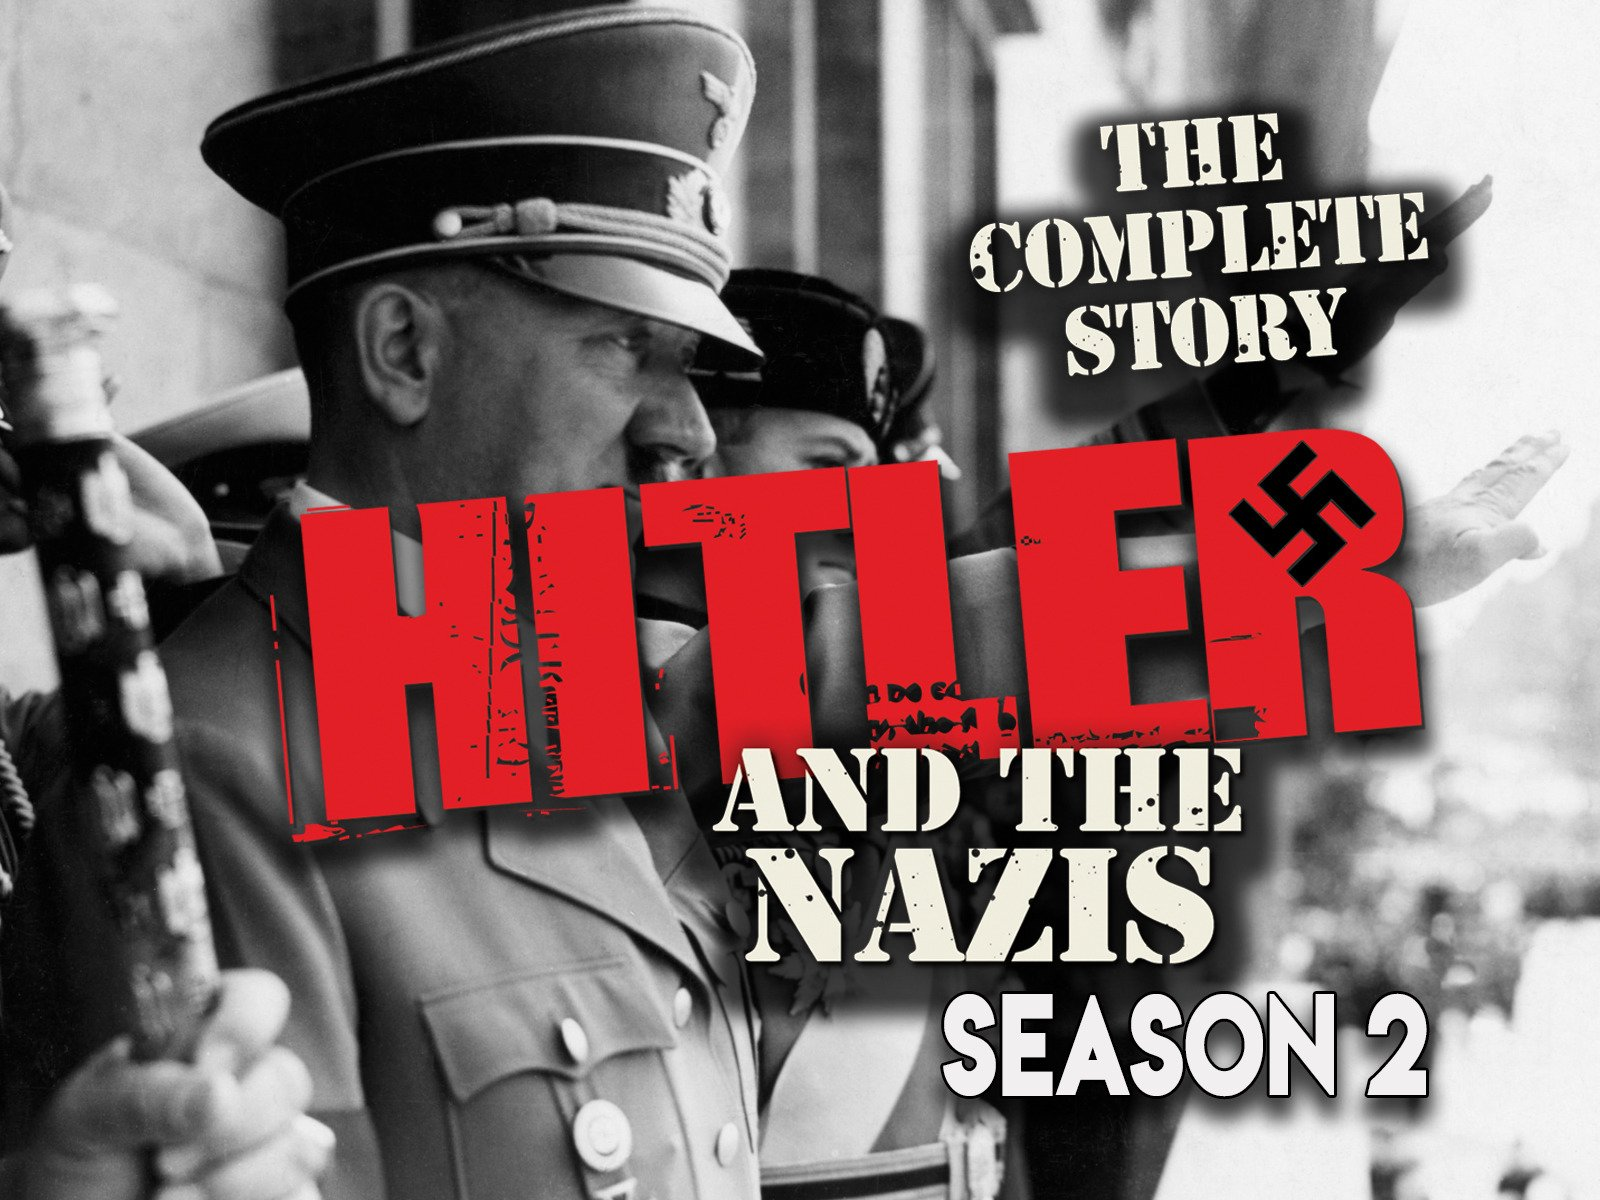 The Complete Story of Hitler and the Nazis